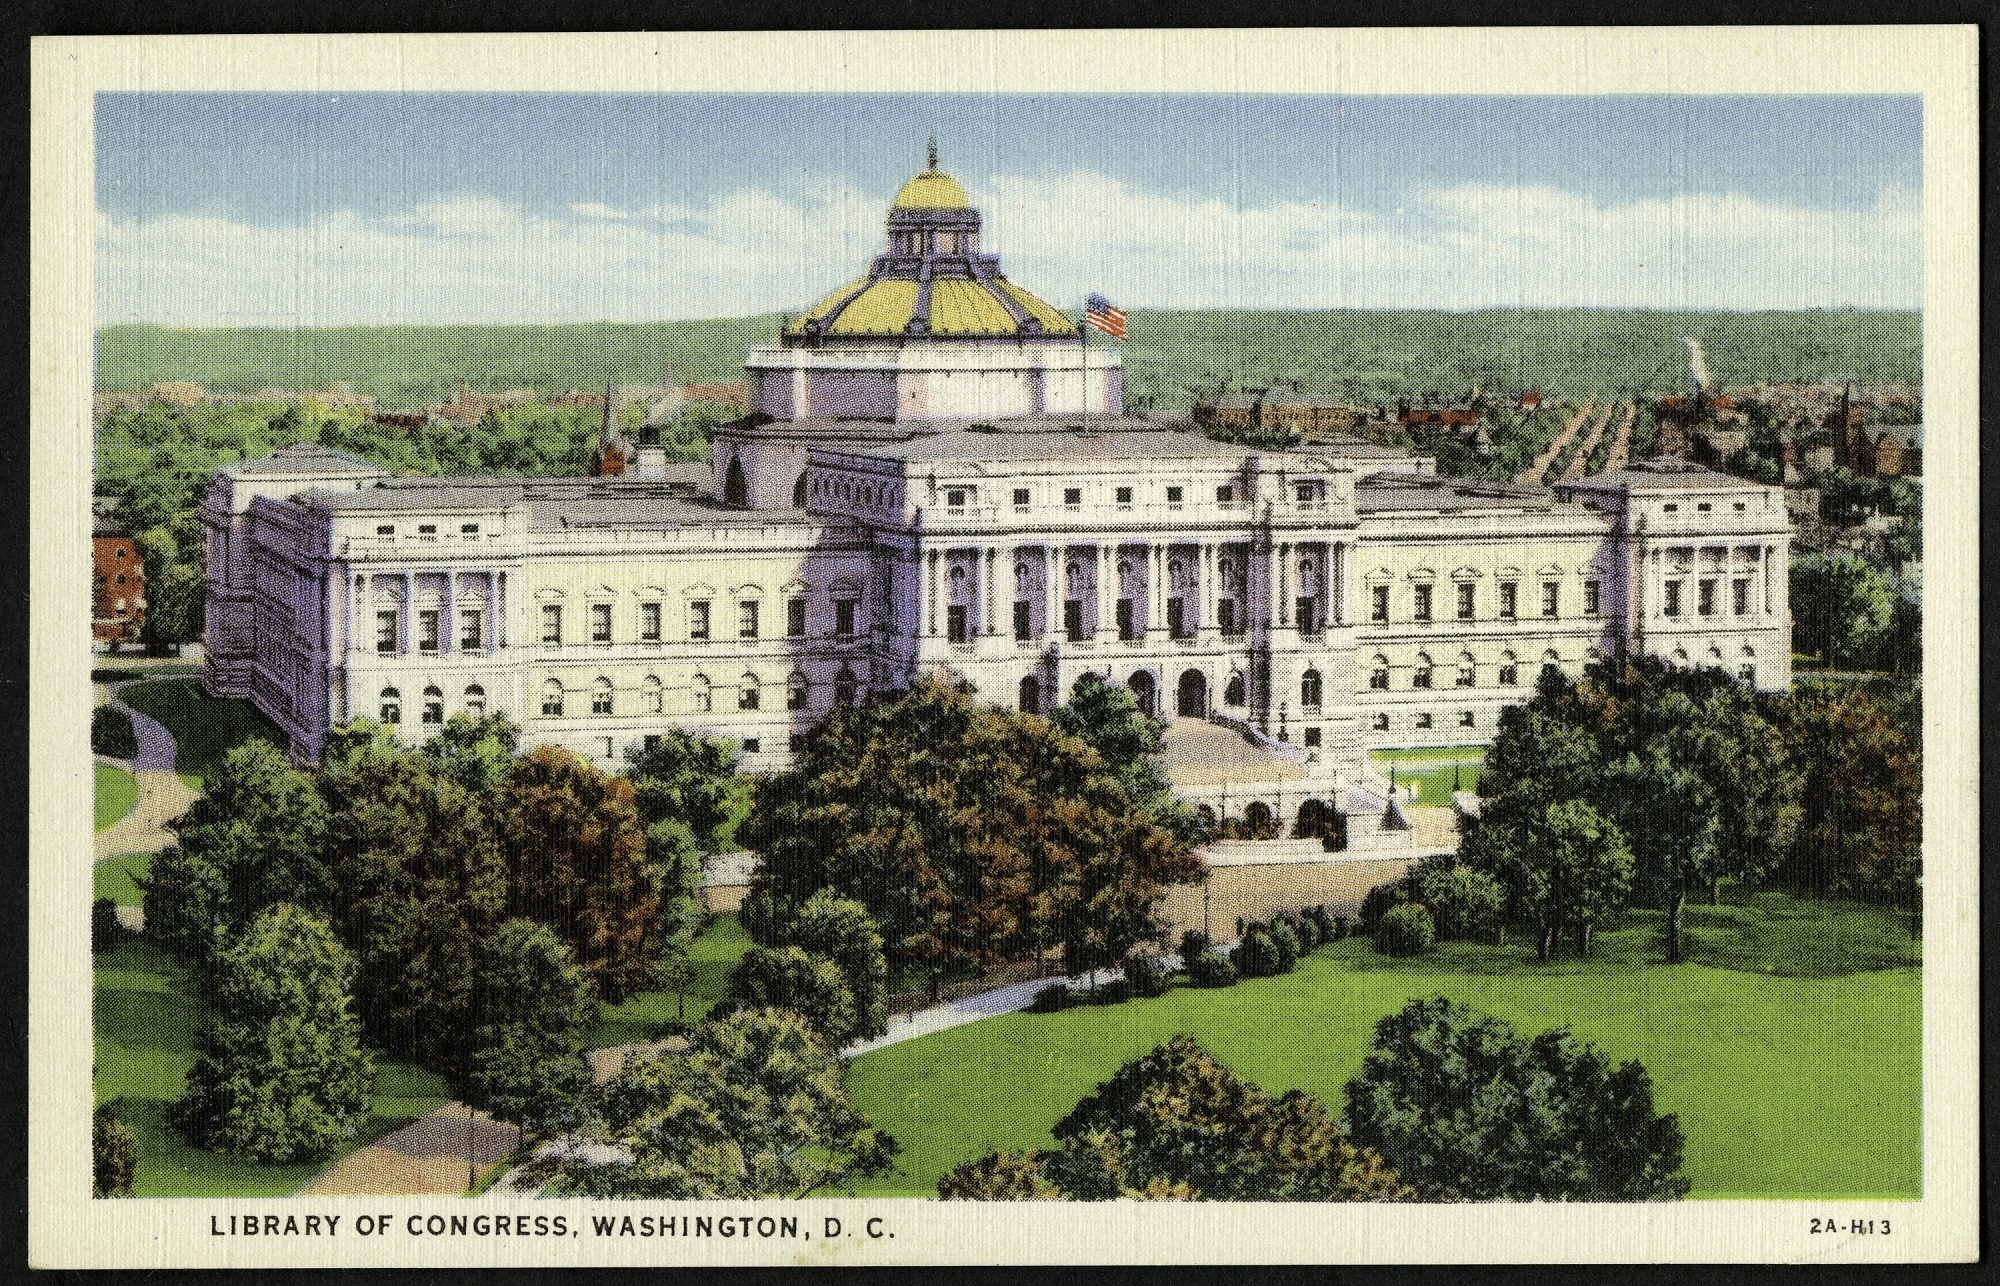 Postcard of the Library of Congress